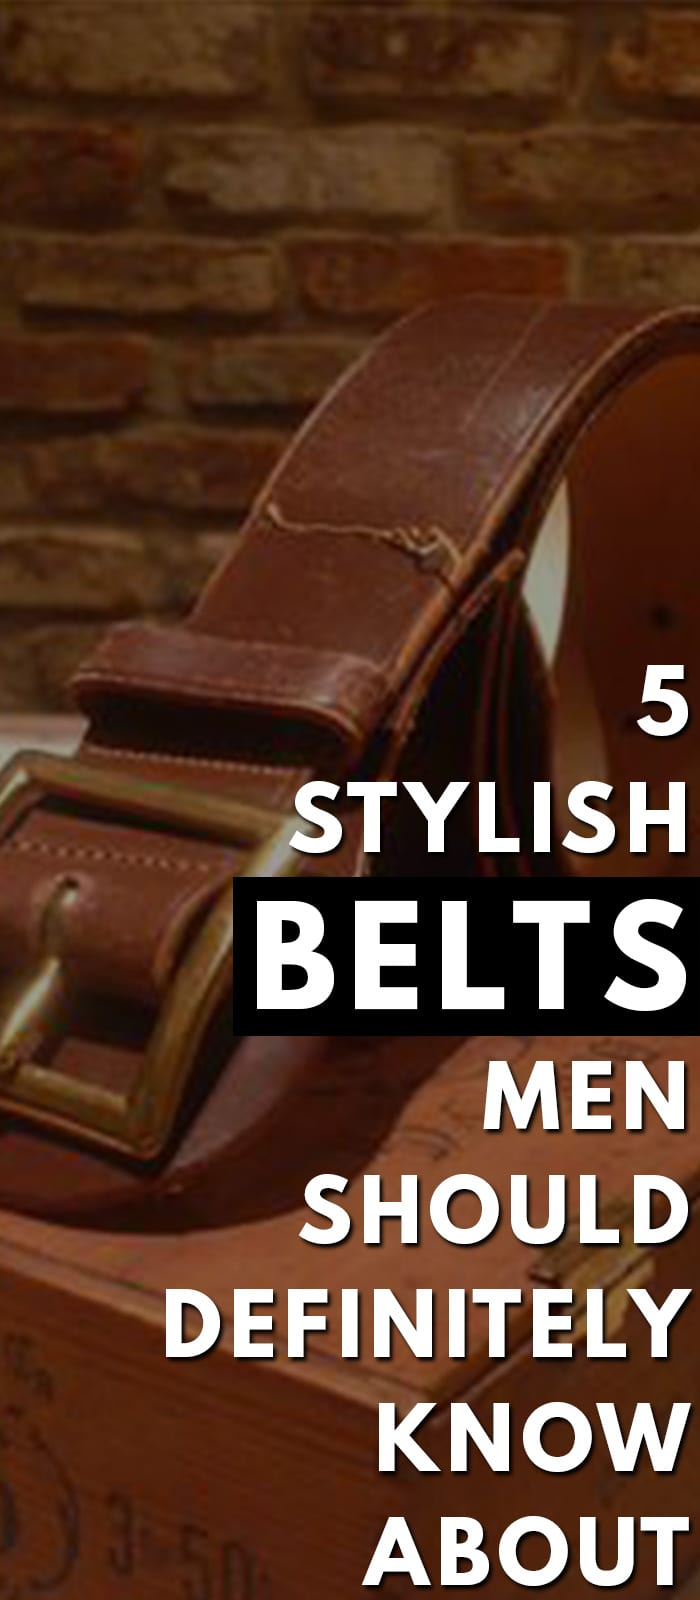 5 Stylish Belts Men Should Definitely Know